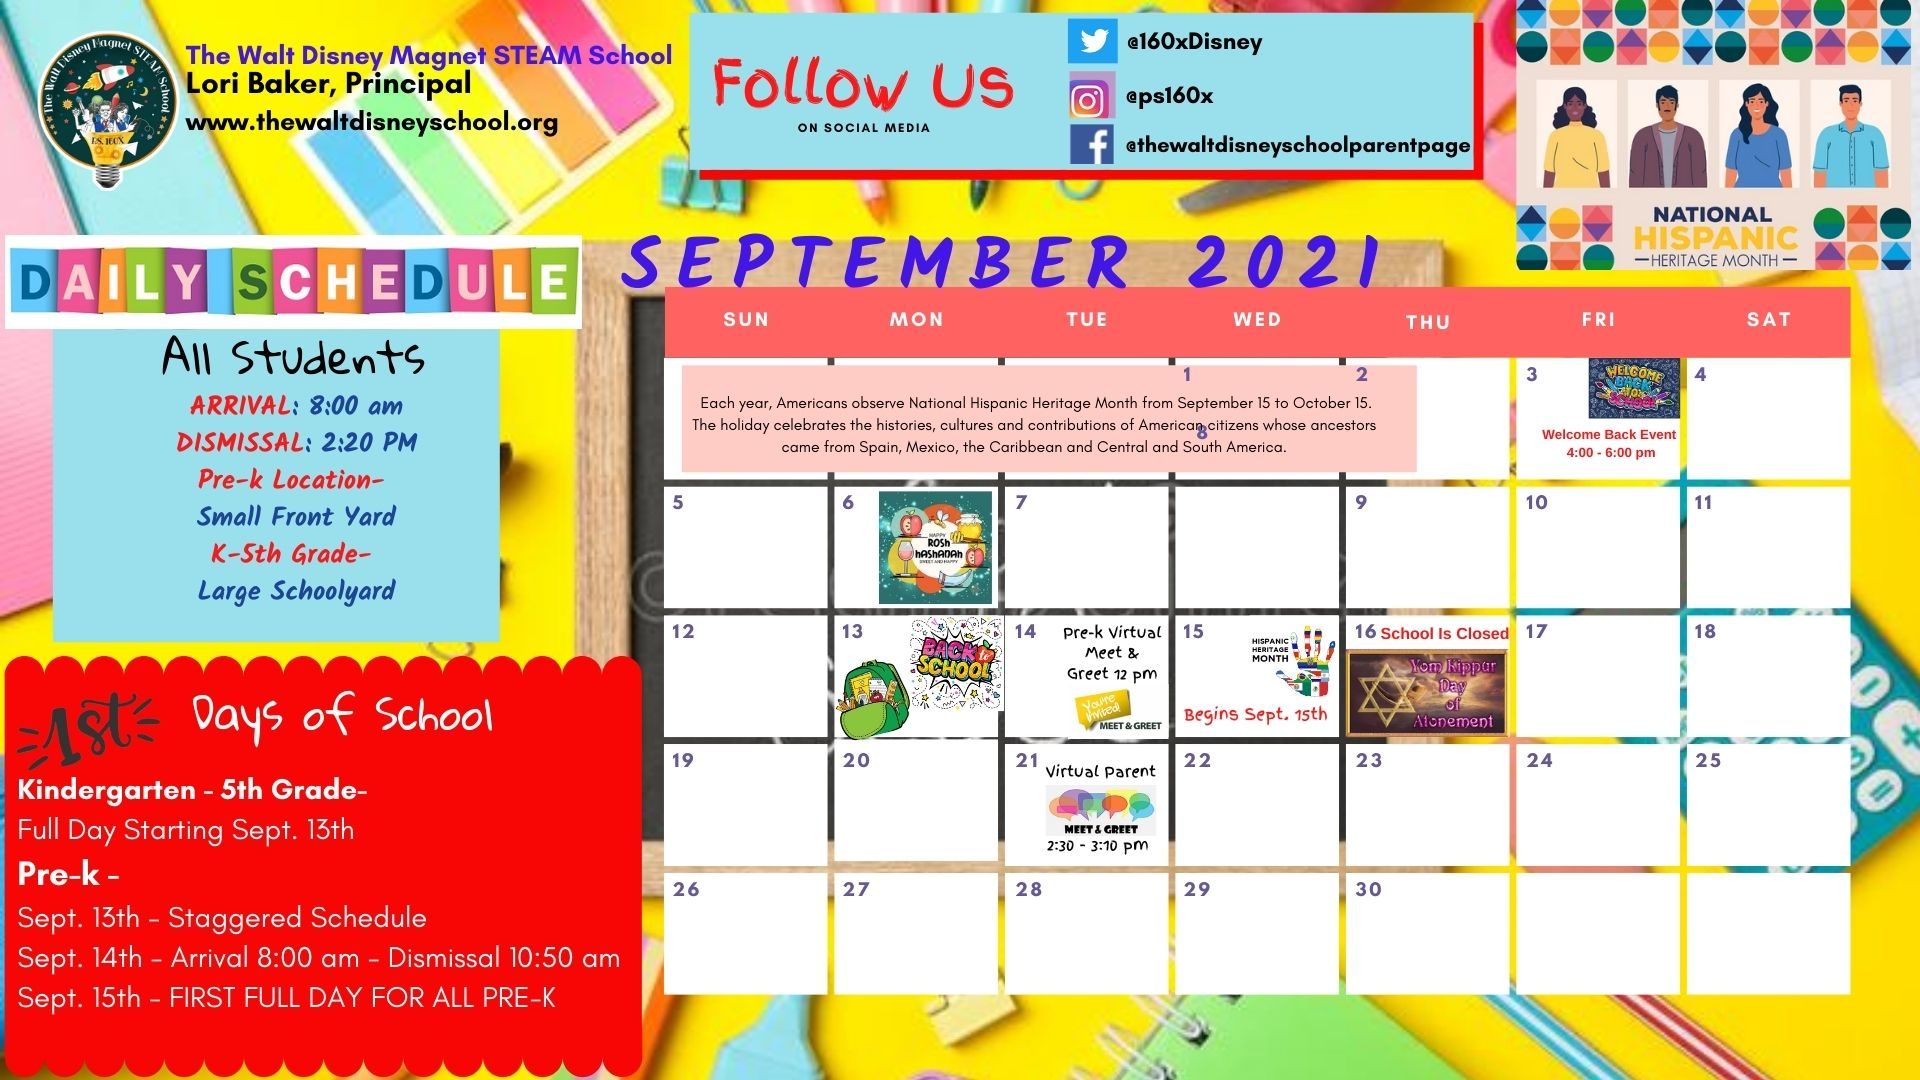 SEpt. 2021 School Calendar with important dates and school closures.